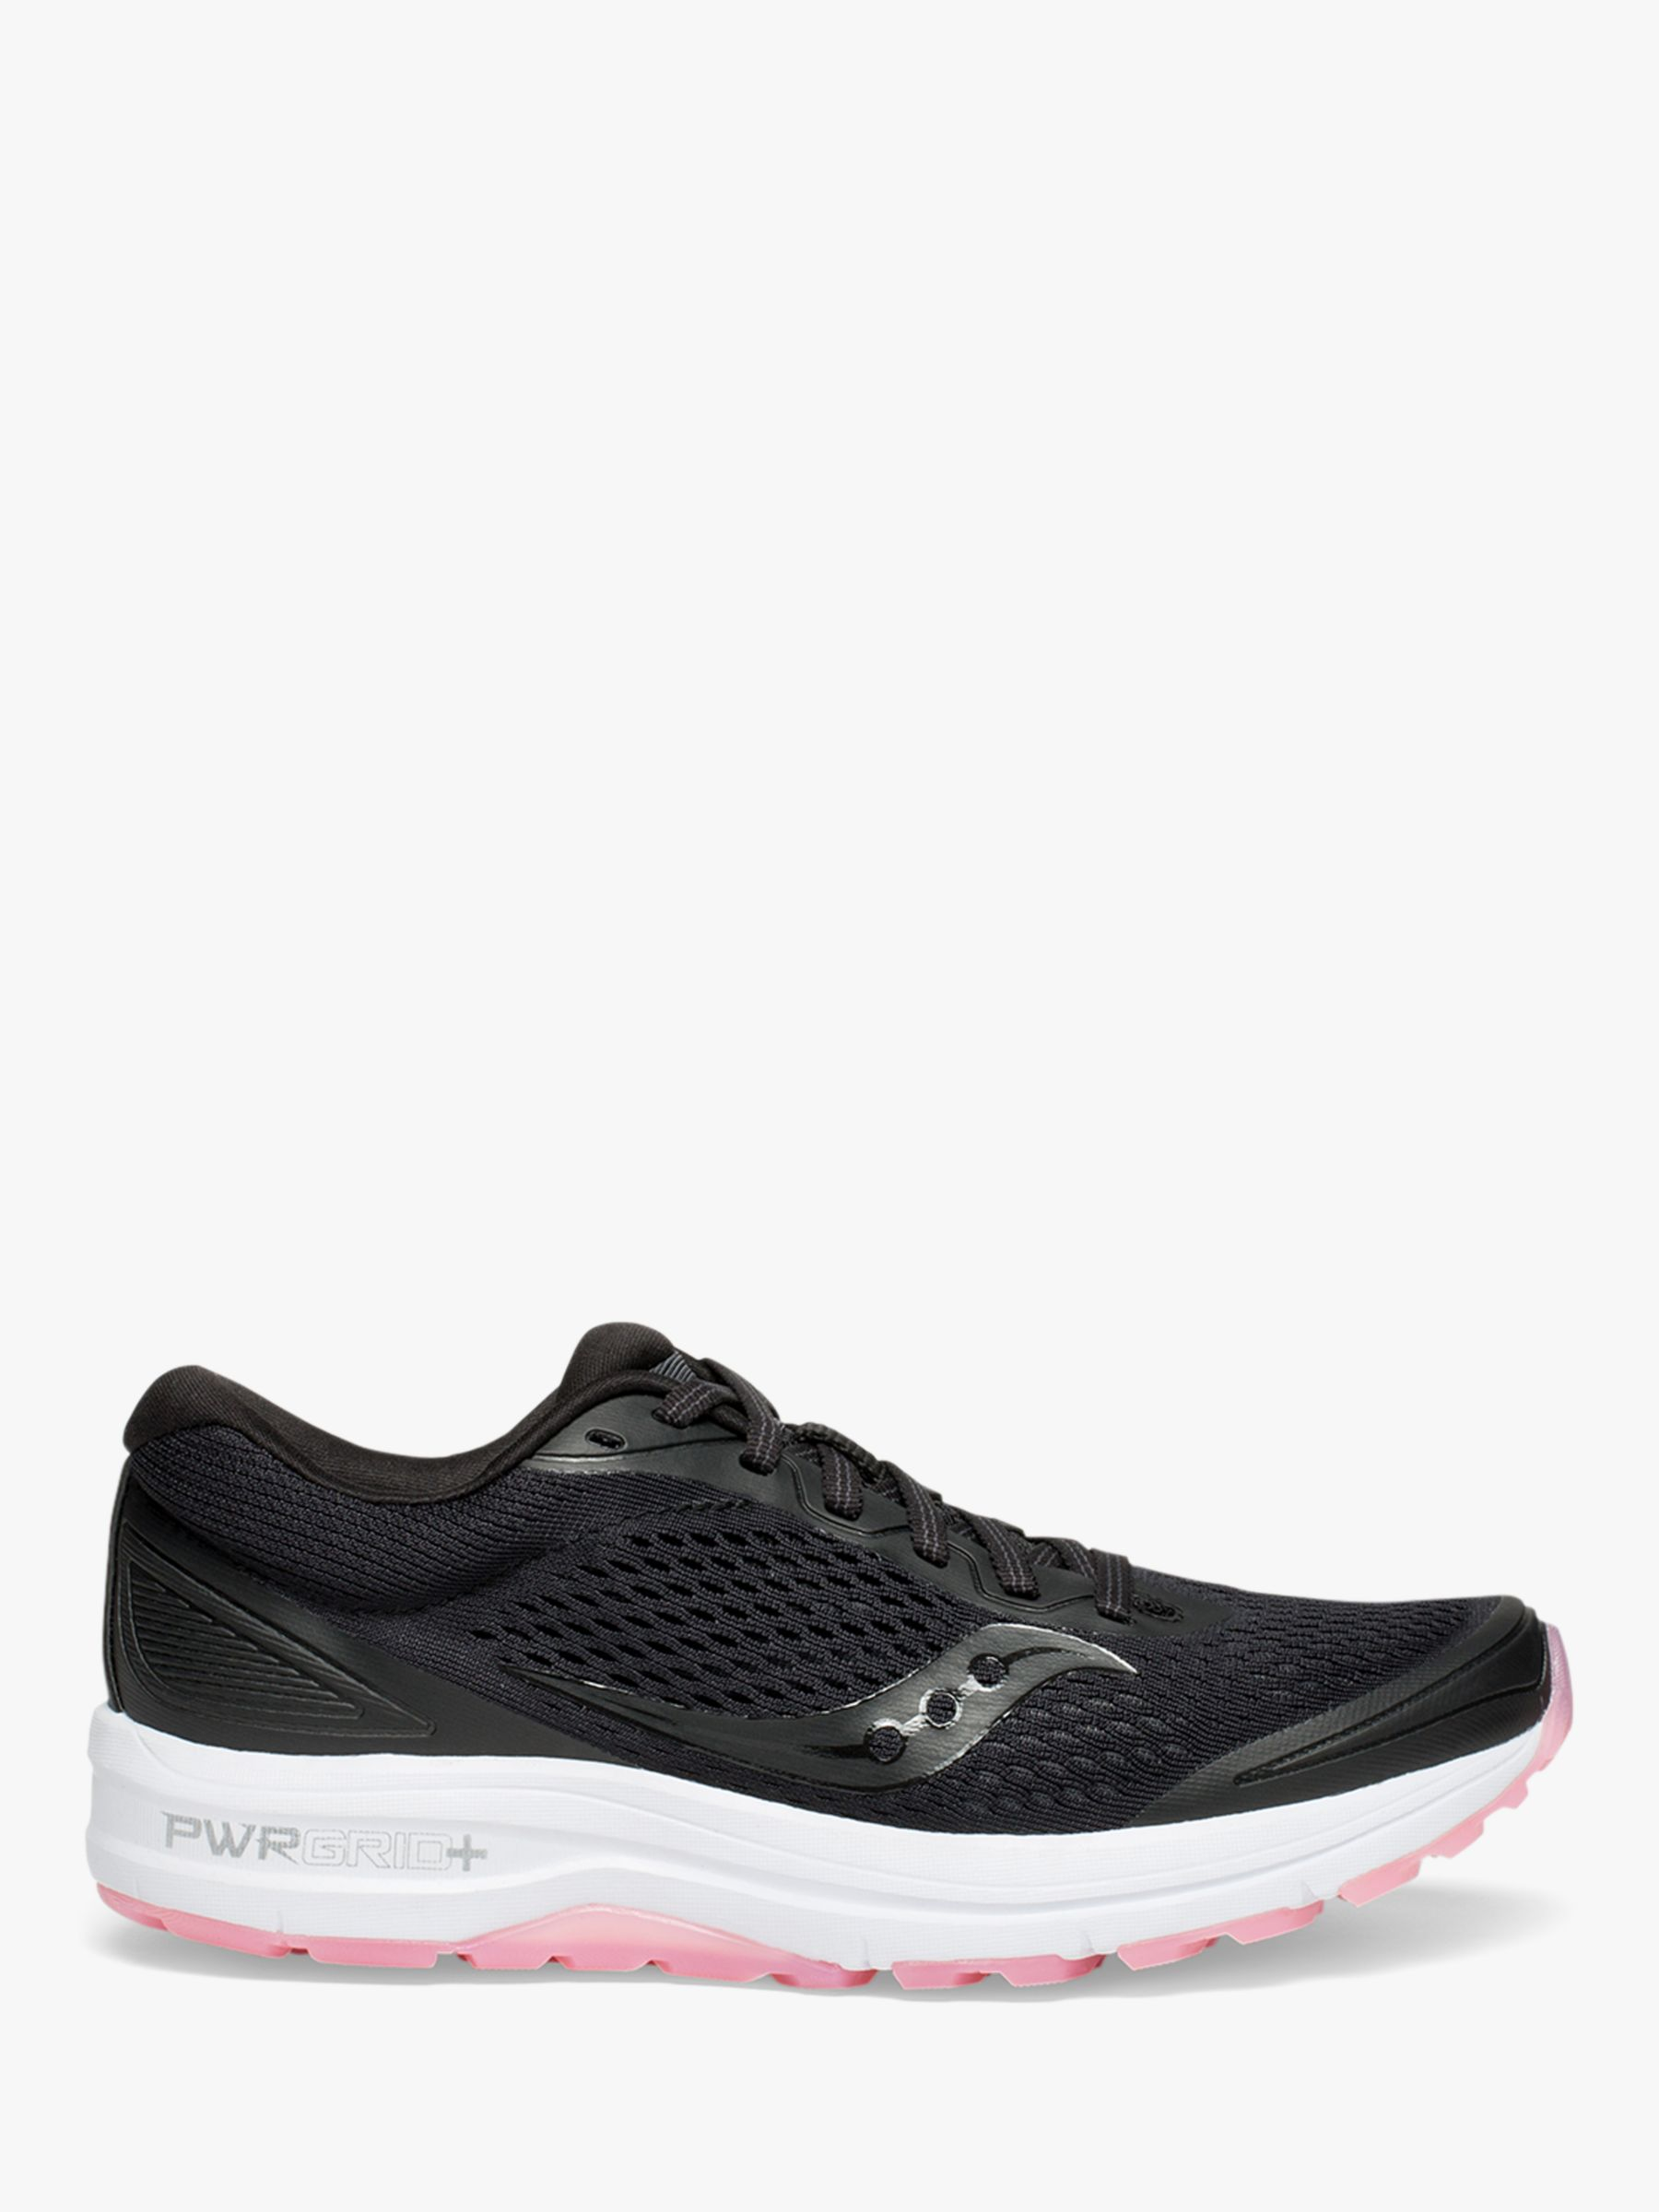 Saucony Saucony Clarion Women's Running Shoes, Black